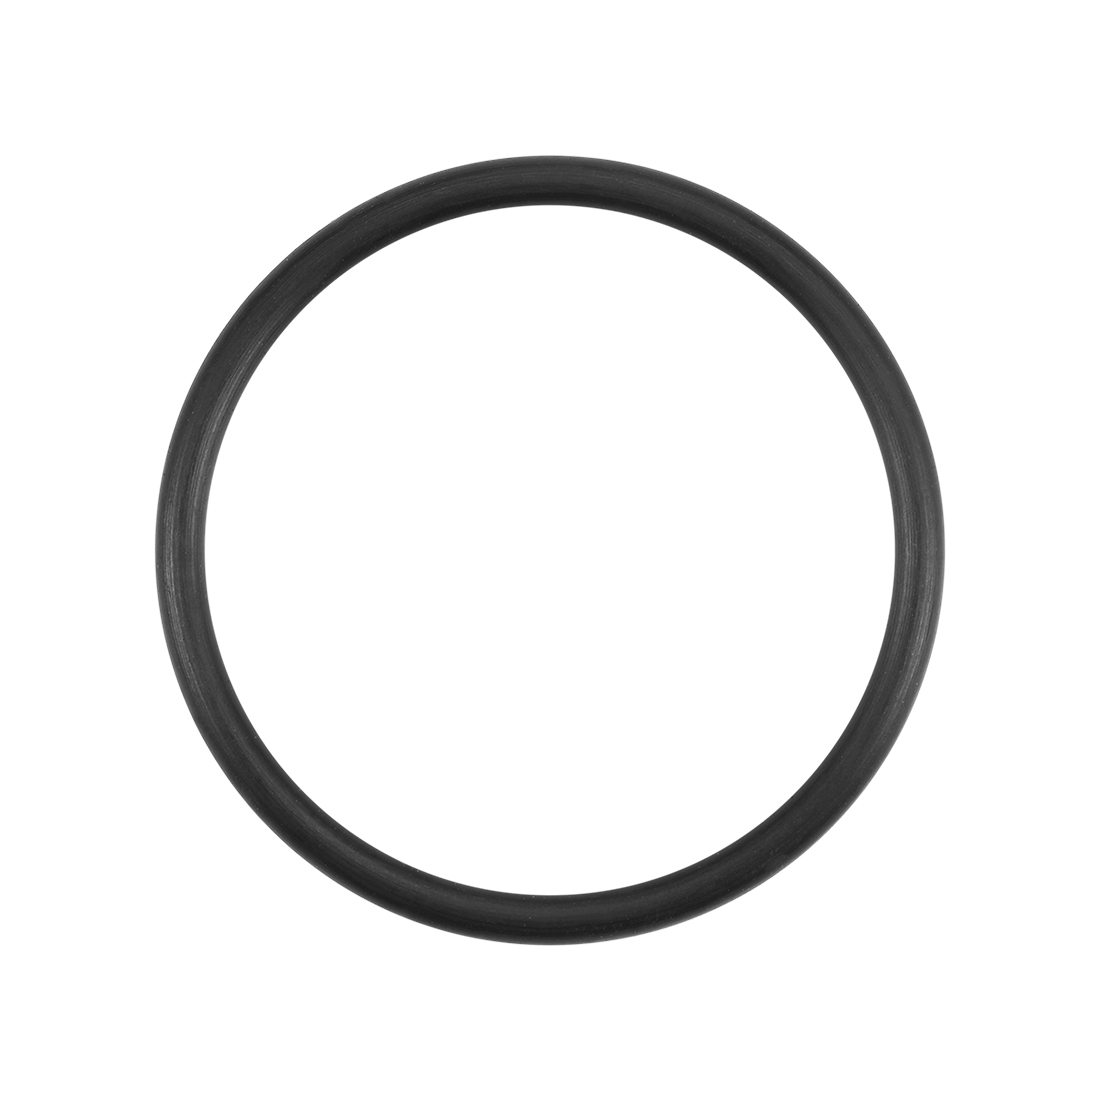 O-Rings Nitrile Rubber 21.7mm x 25.3mm x 1.8mm Round Seal Gasket 20Pcs